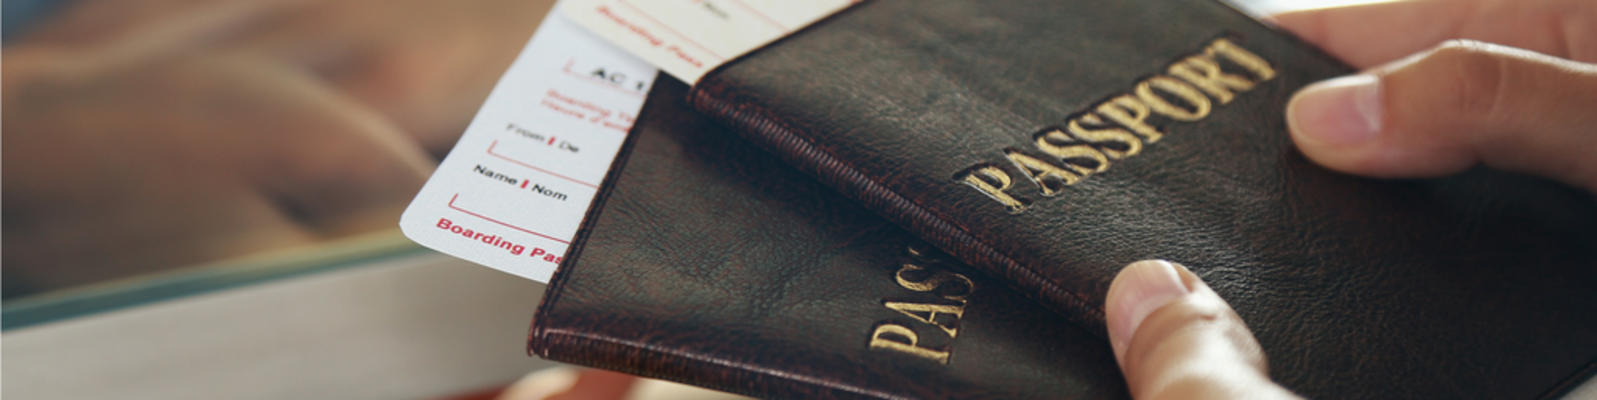 U.S. Passport Card Vs. Book (Photo: Africa Studio/Shutterstock.com)